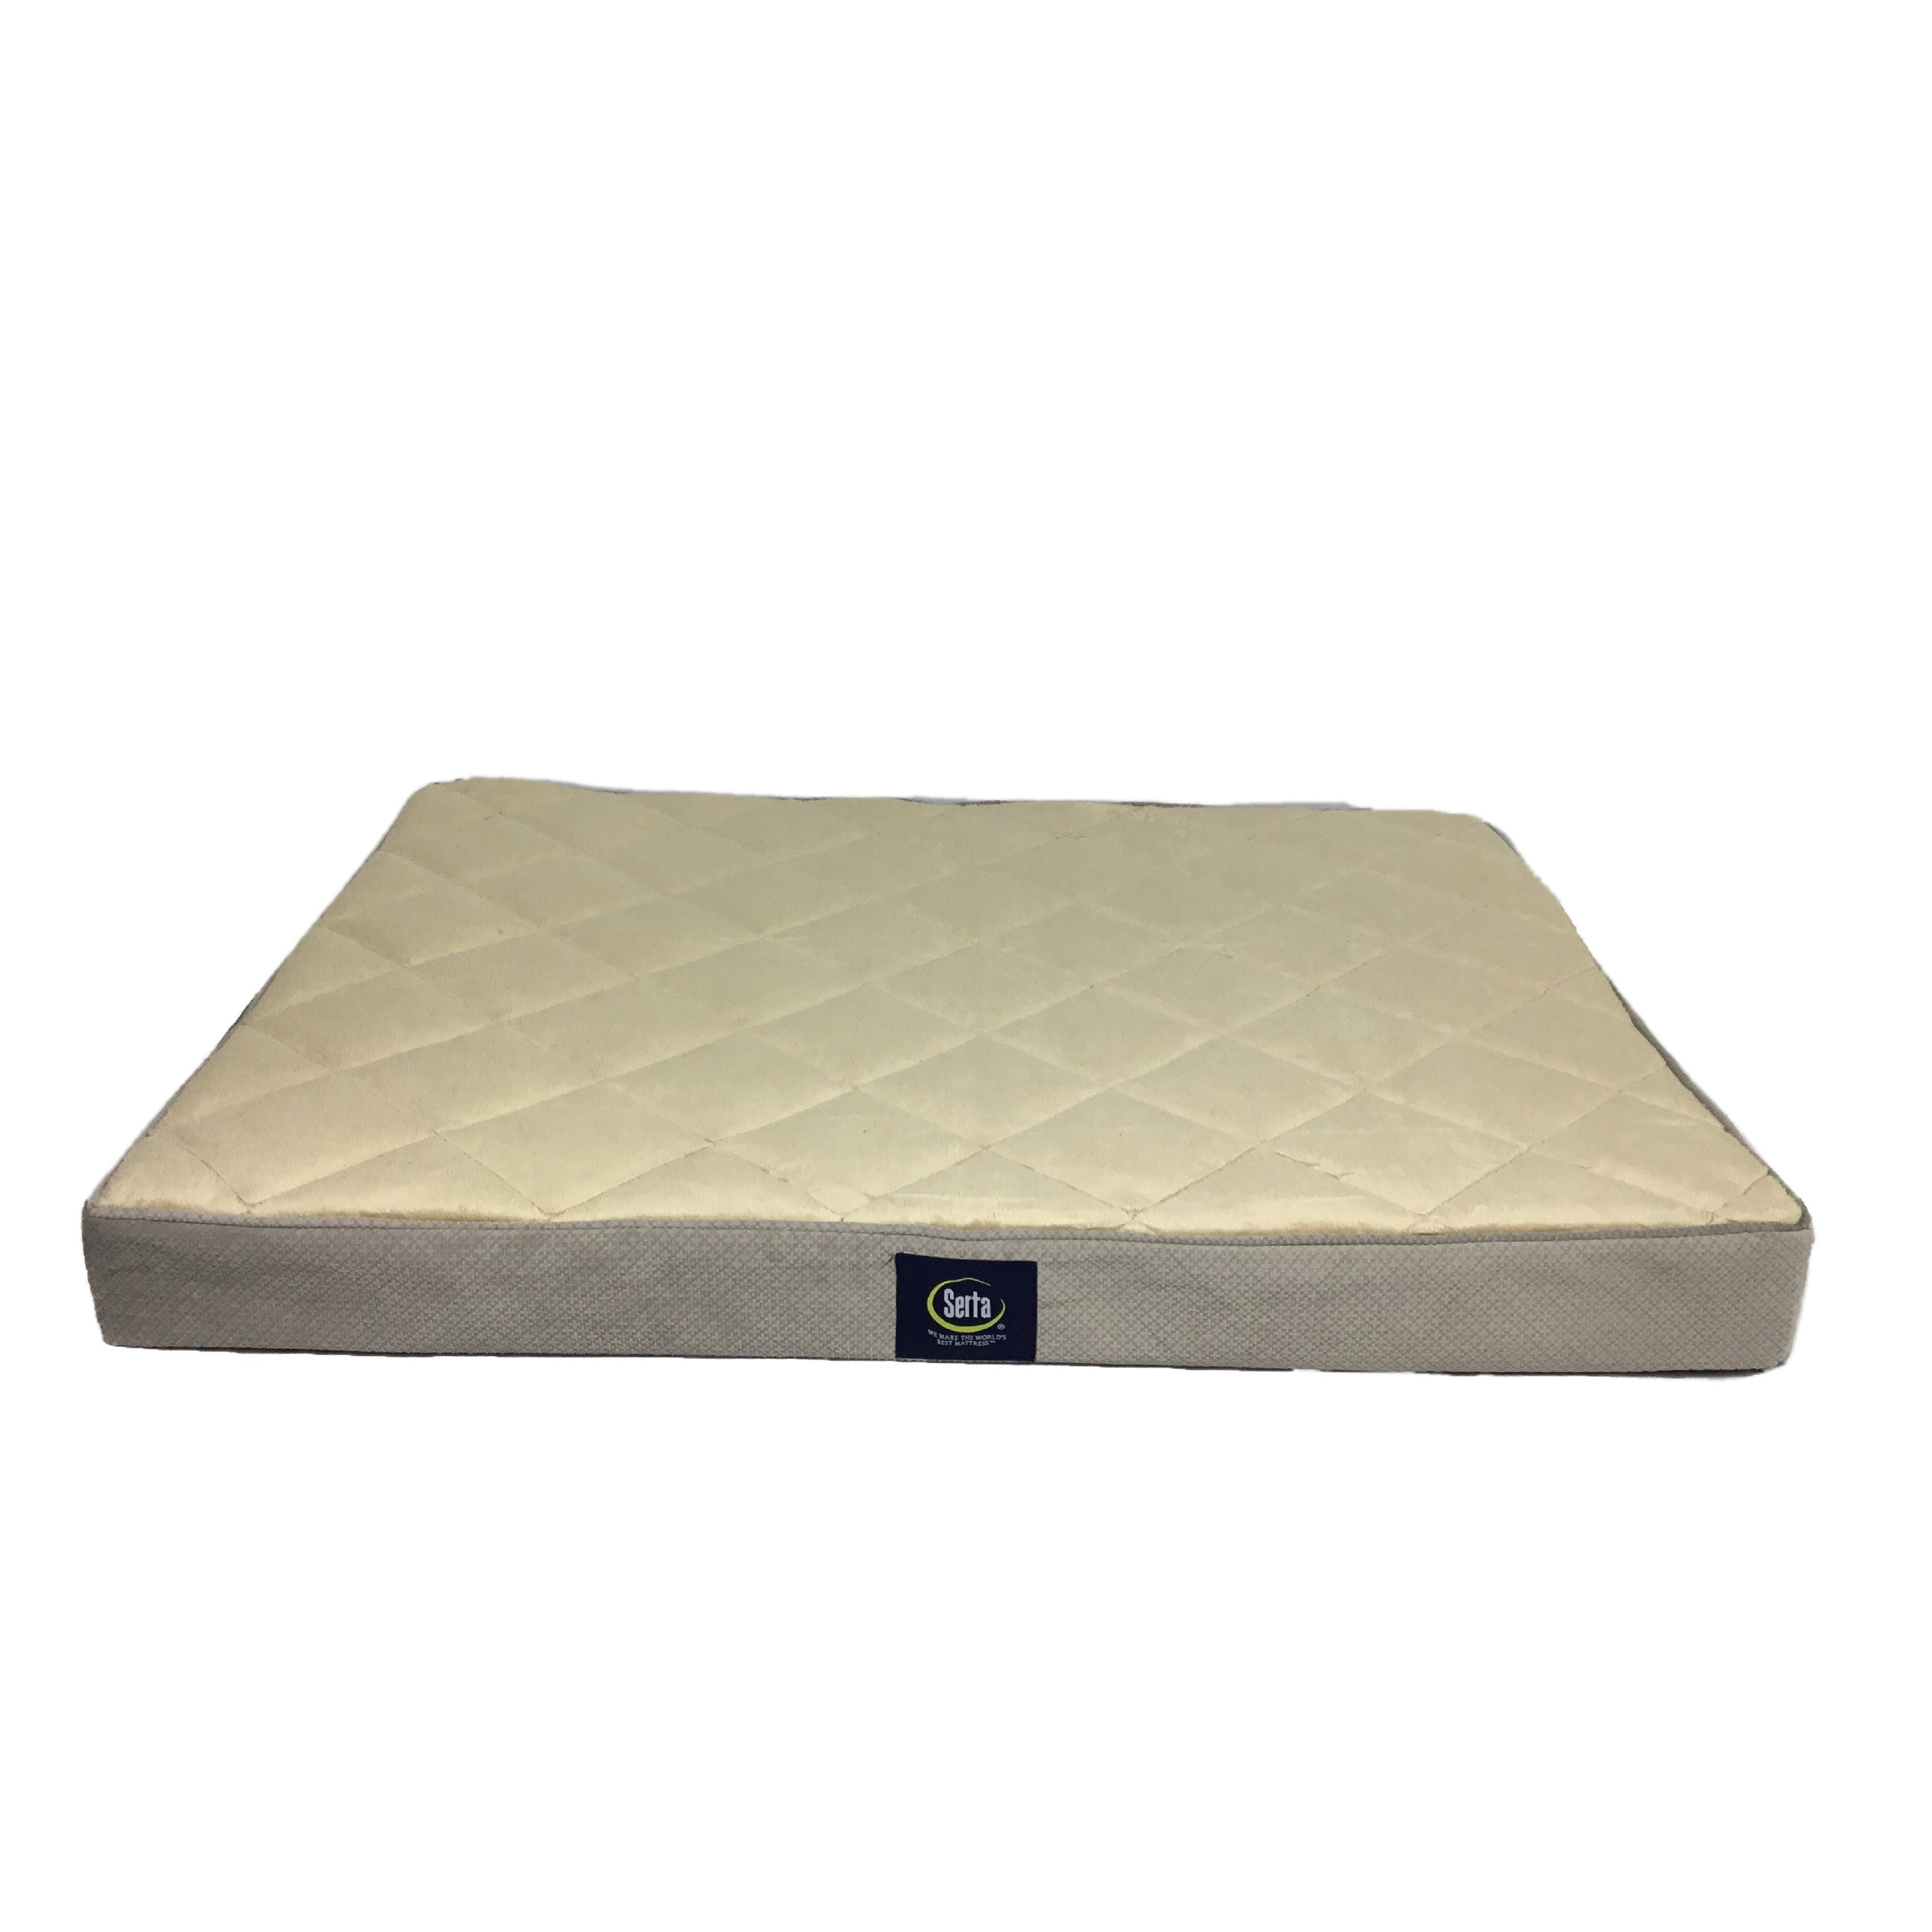 serta orthopedic quilted pillowtop pet bed free shipping today